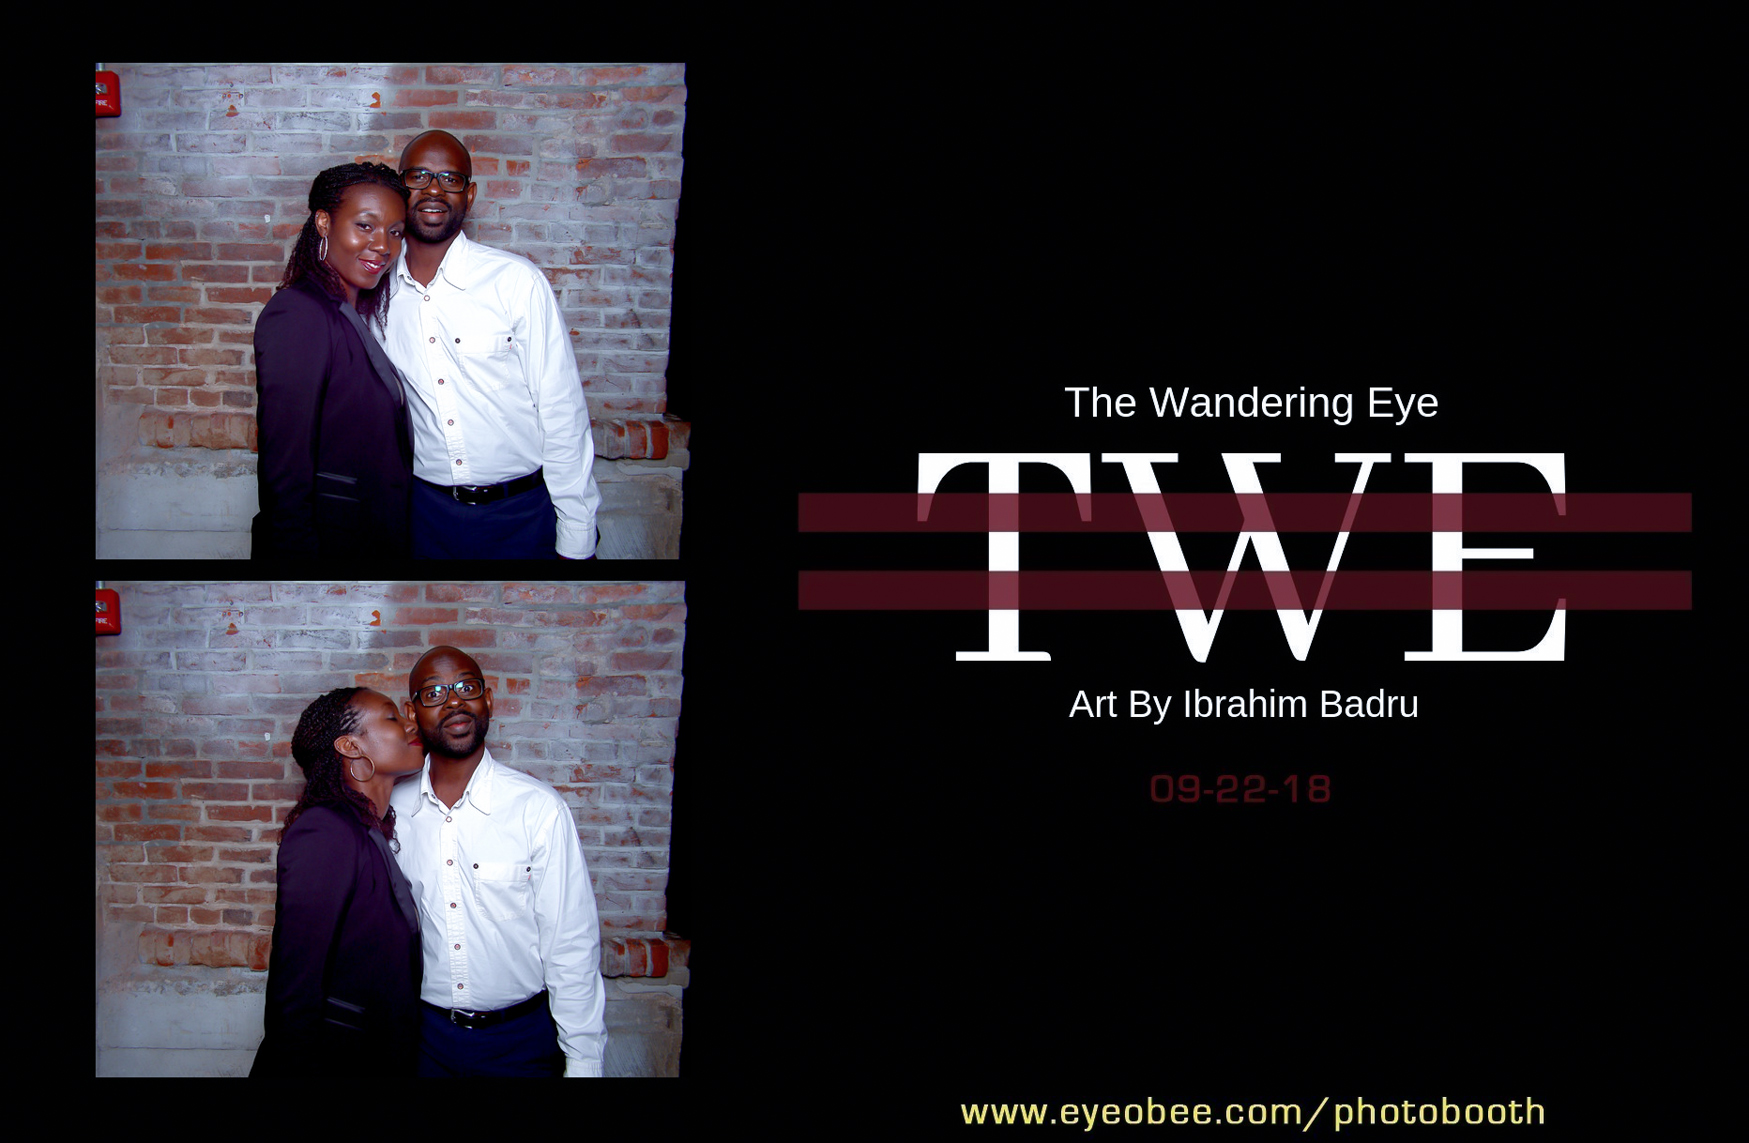 eyeobee PhotoBooth The Wandering eye art by Ibrahim Badru-0-25.jpg